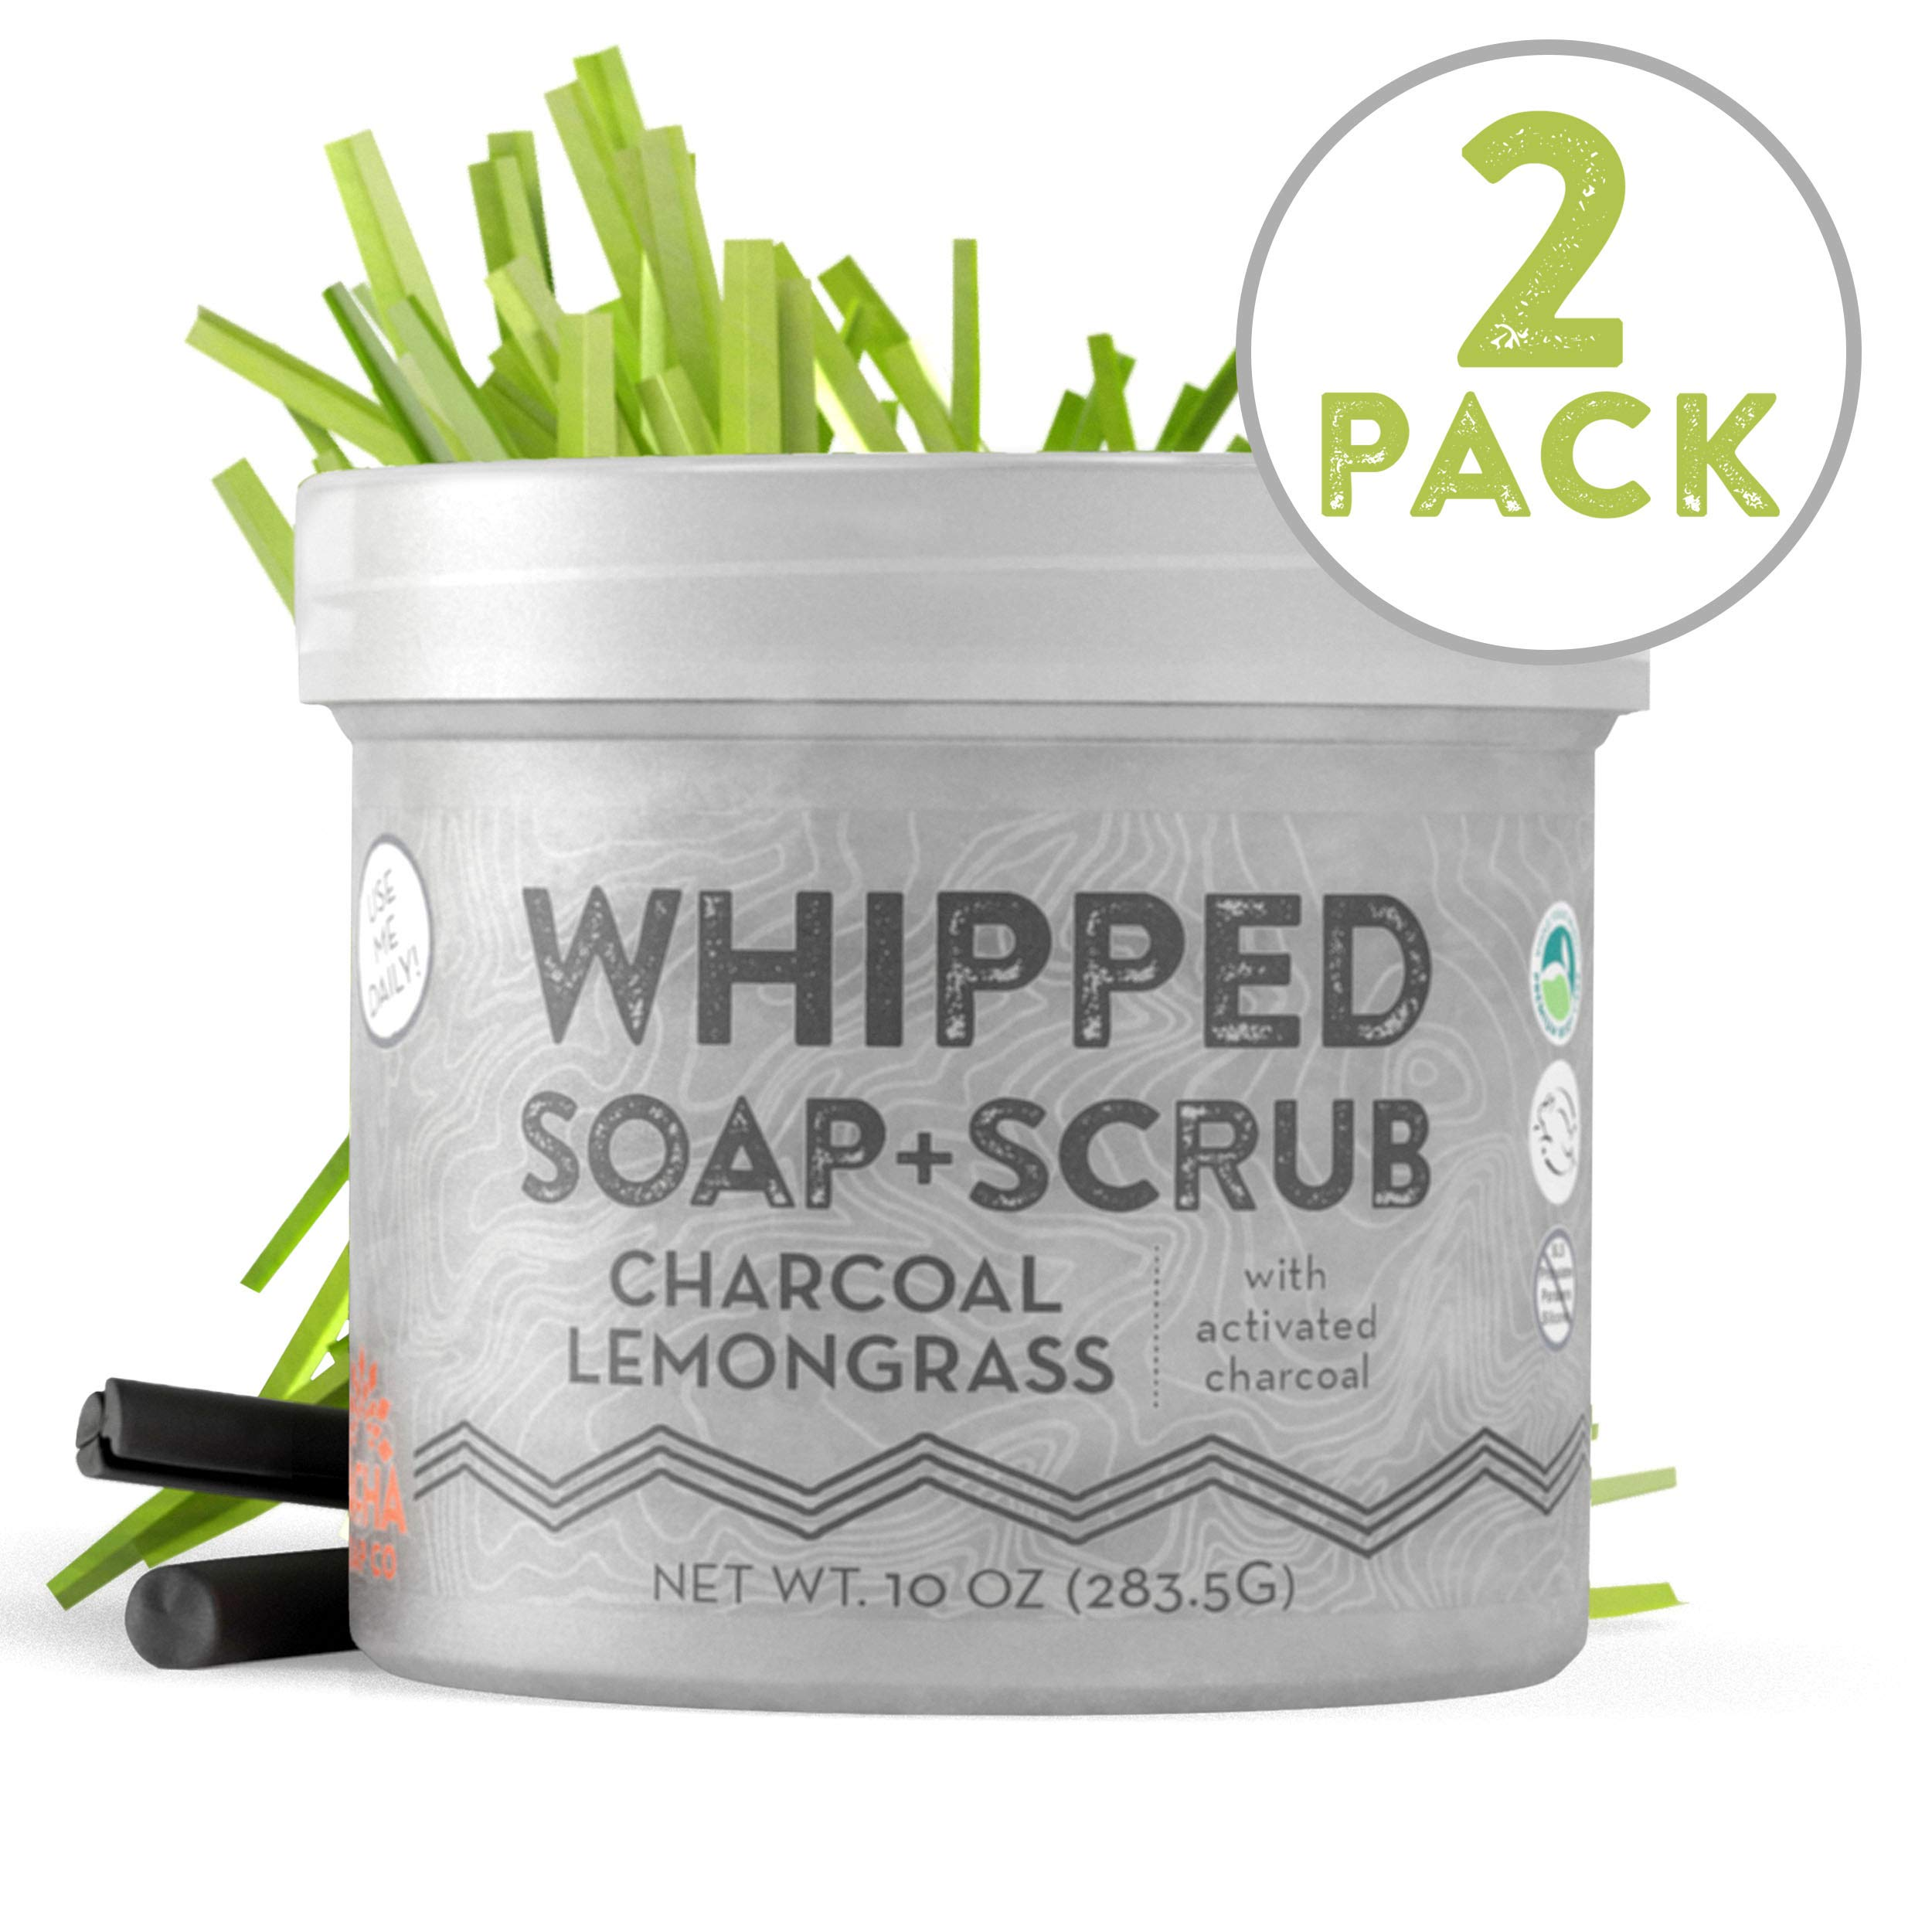 Whipped Soap + Scrub Body Wash - Detoxifying Charcoal and Lemongrass - Luxurious Body Wash and Scrub for an Exfoliating Head to Toe Cleanse